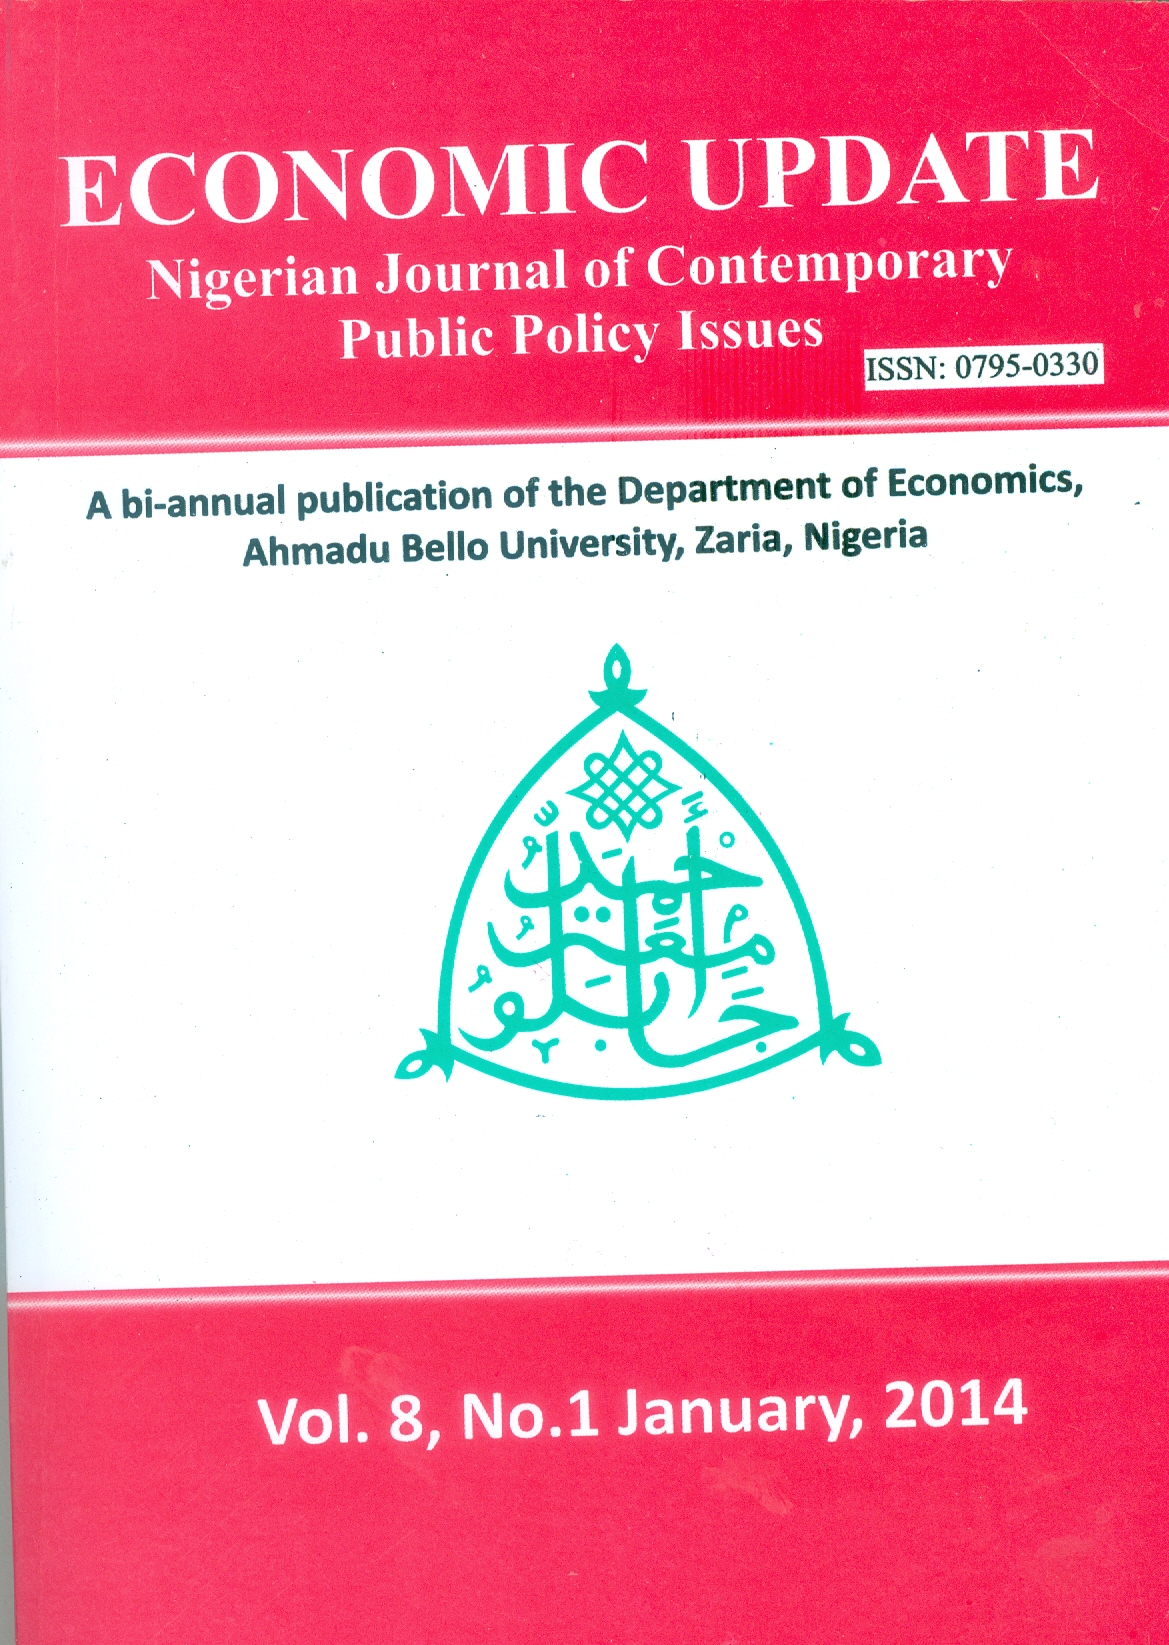 NIGERIAN JOURNAL OF CONTEMPORARY PUBLIC POLICY